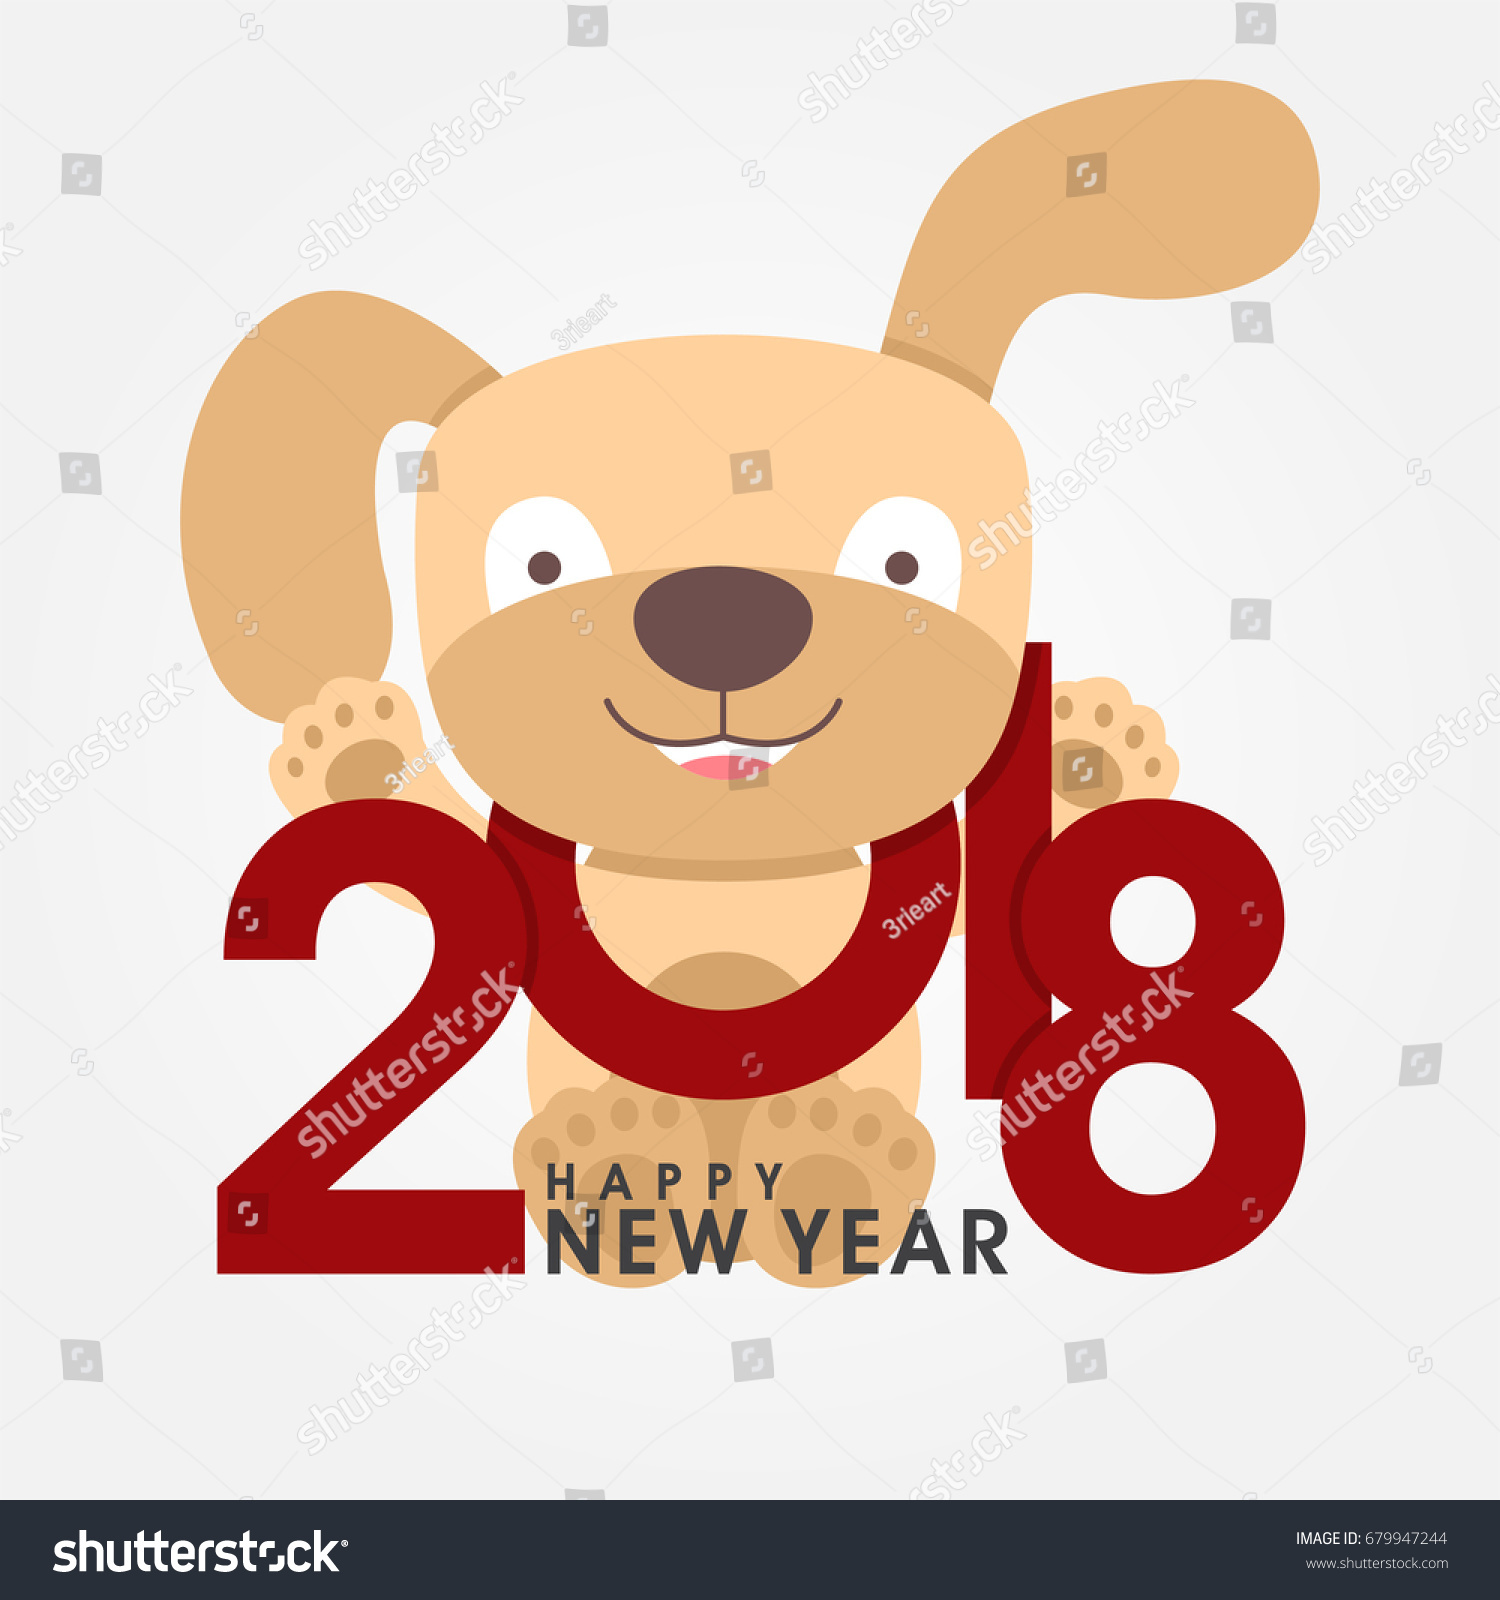 Happy 2018 new year greeting card stock vector royalty free happy 2018 new year greeting card chinese zodiac funny dog congratulates on holiday m4hsunfo